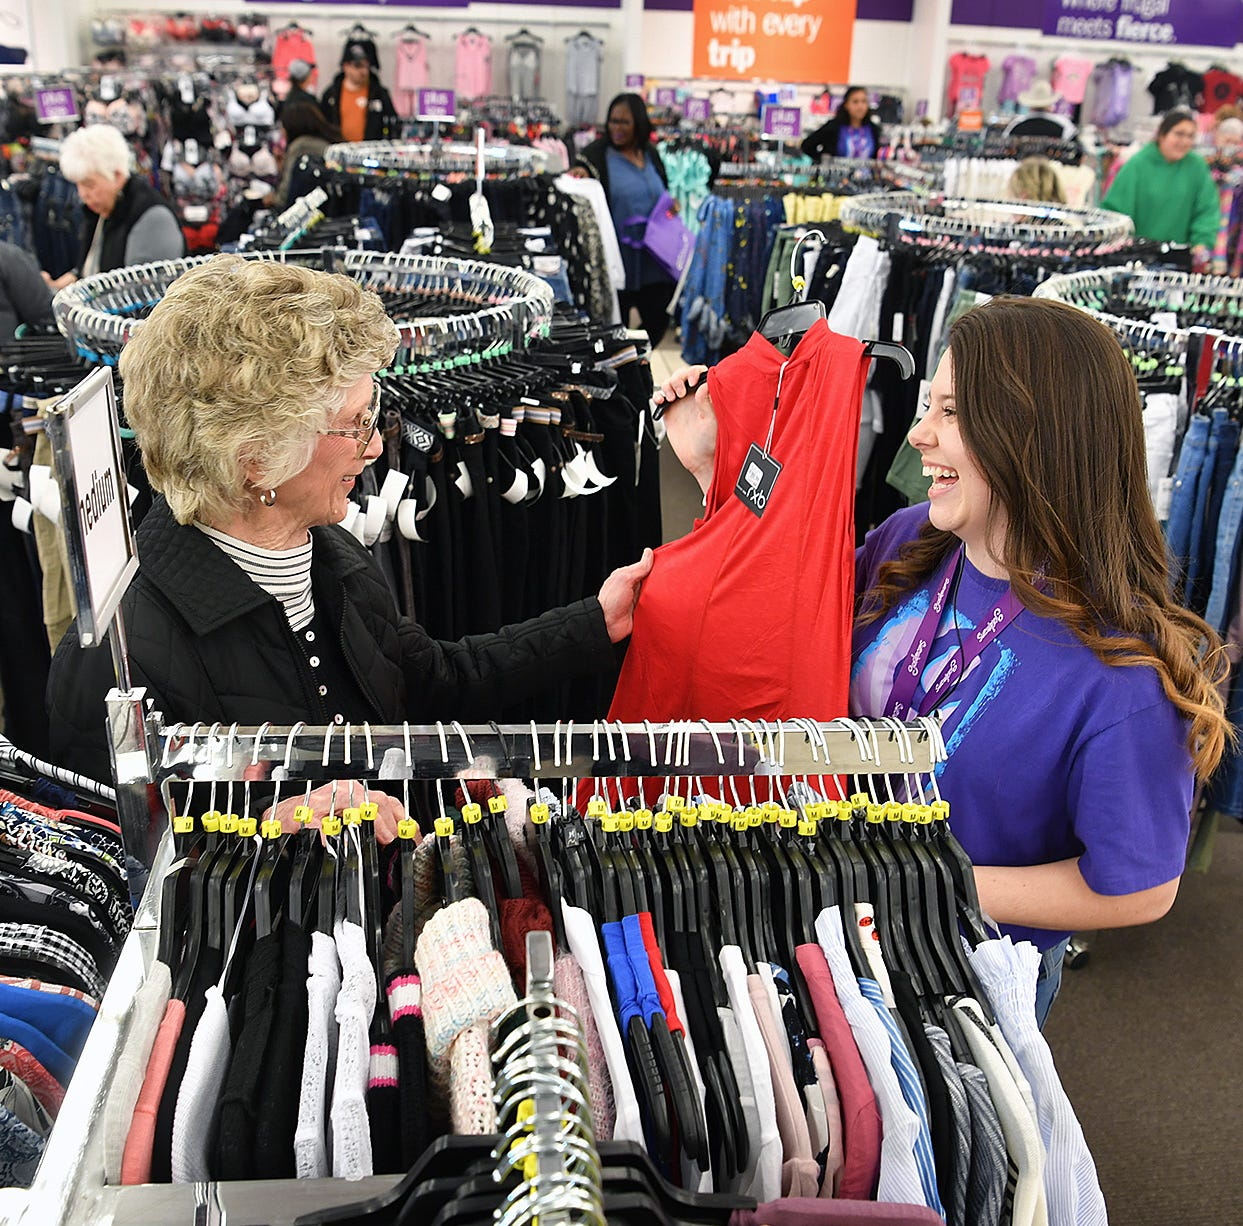 Gordmans opens in Burkburnett with apparel and home decor